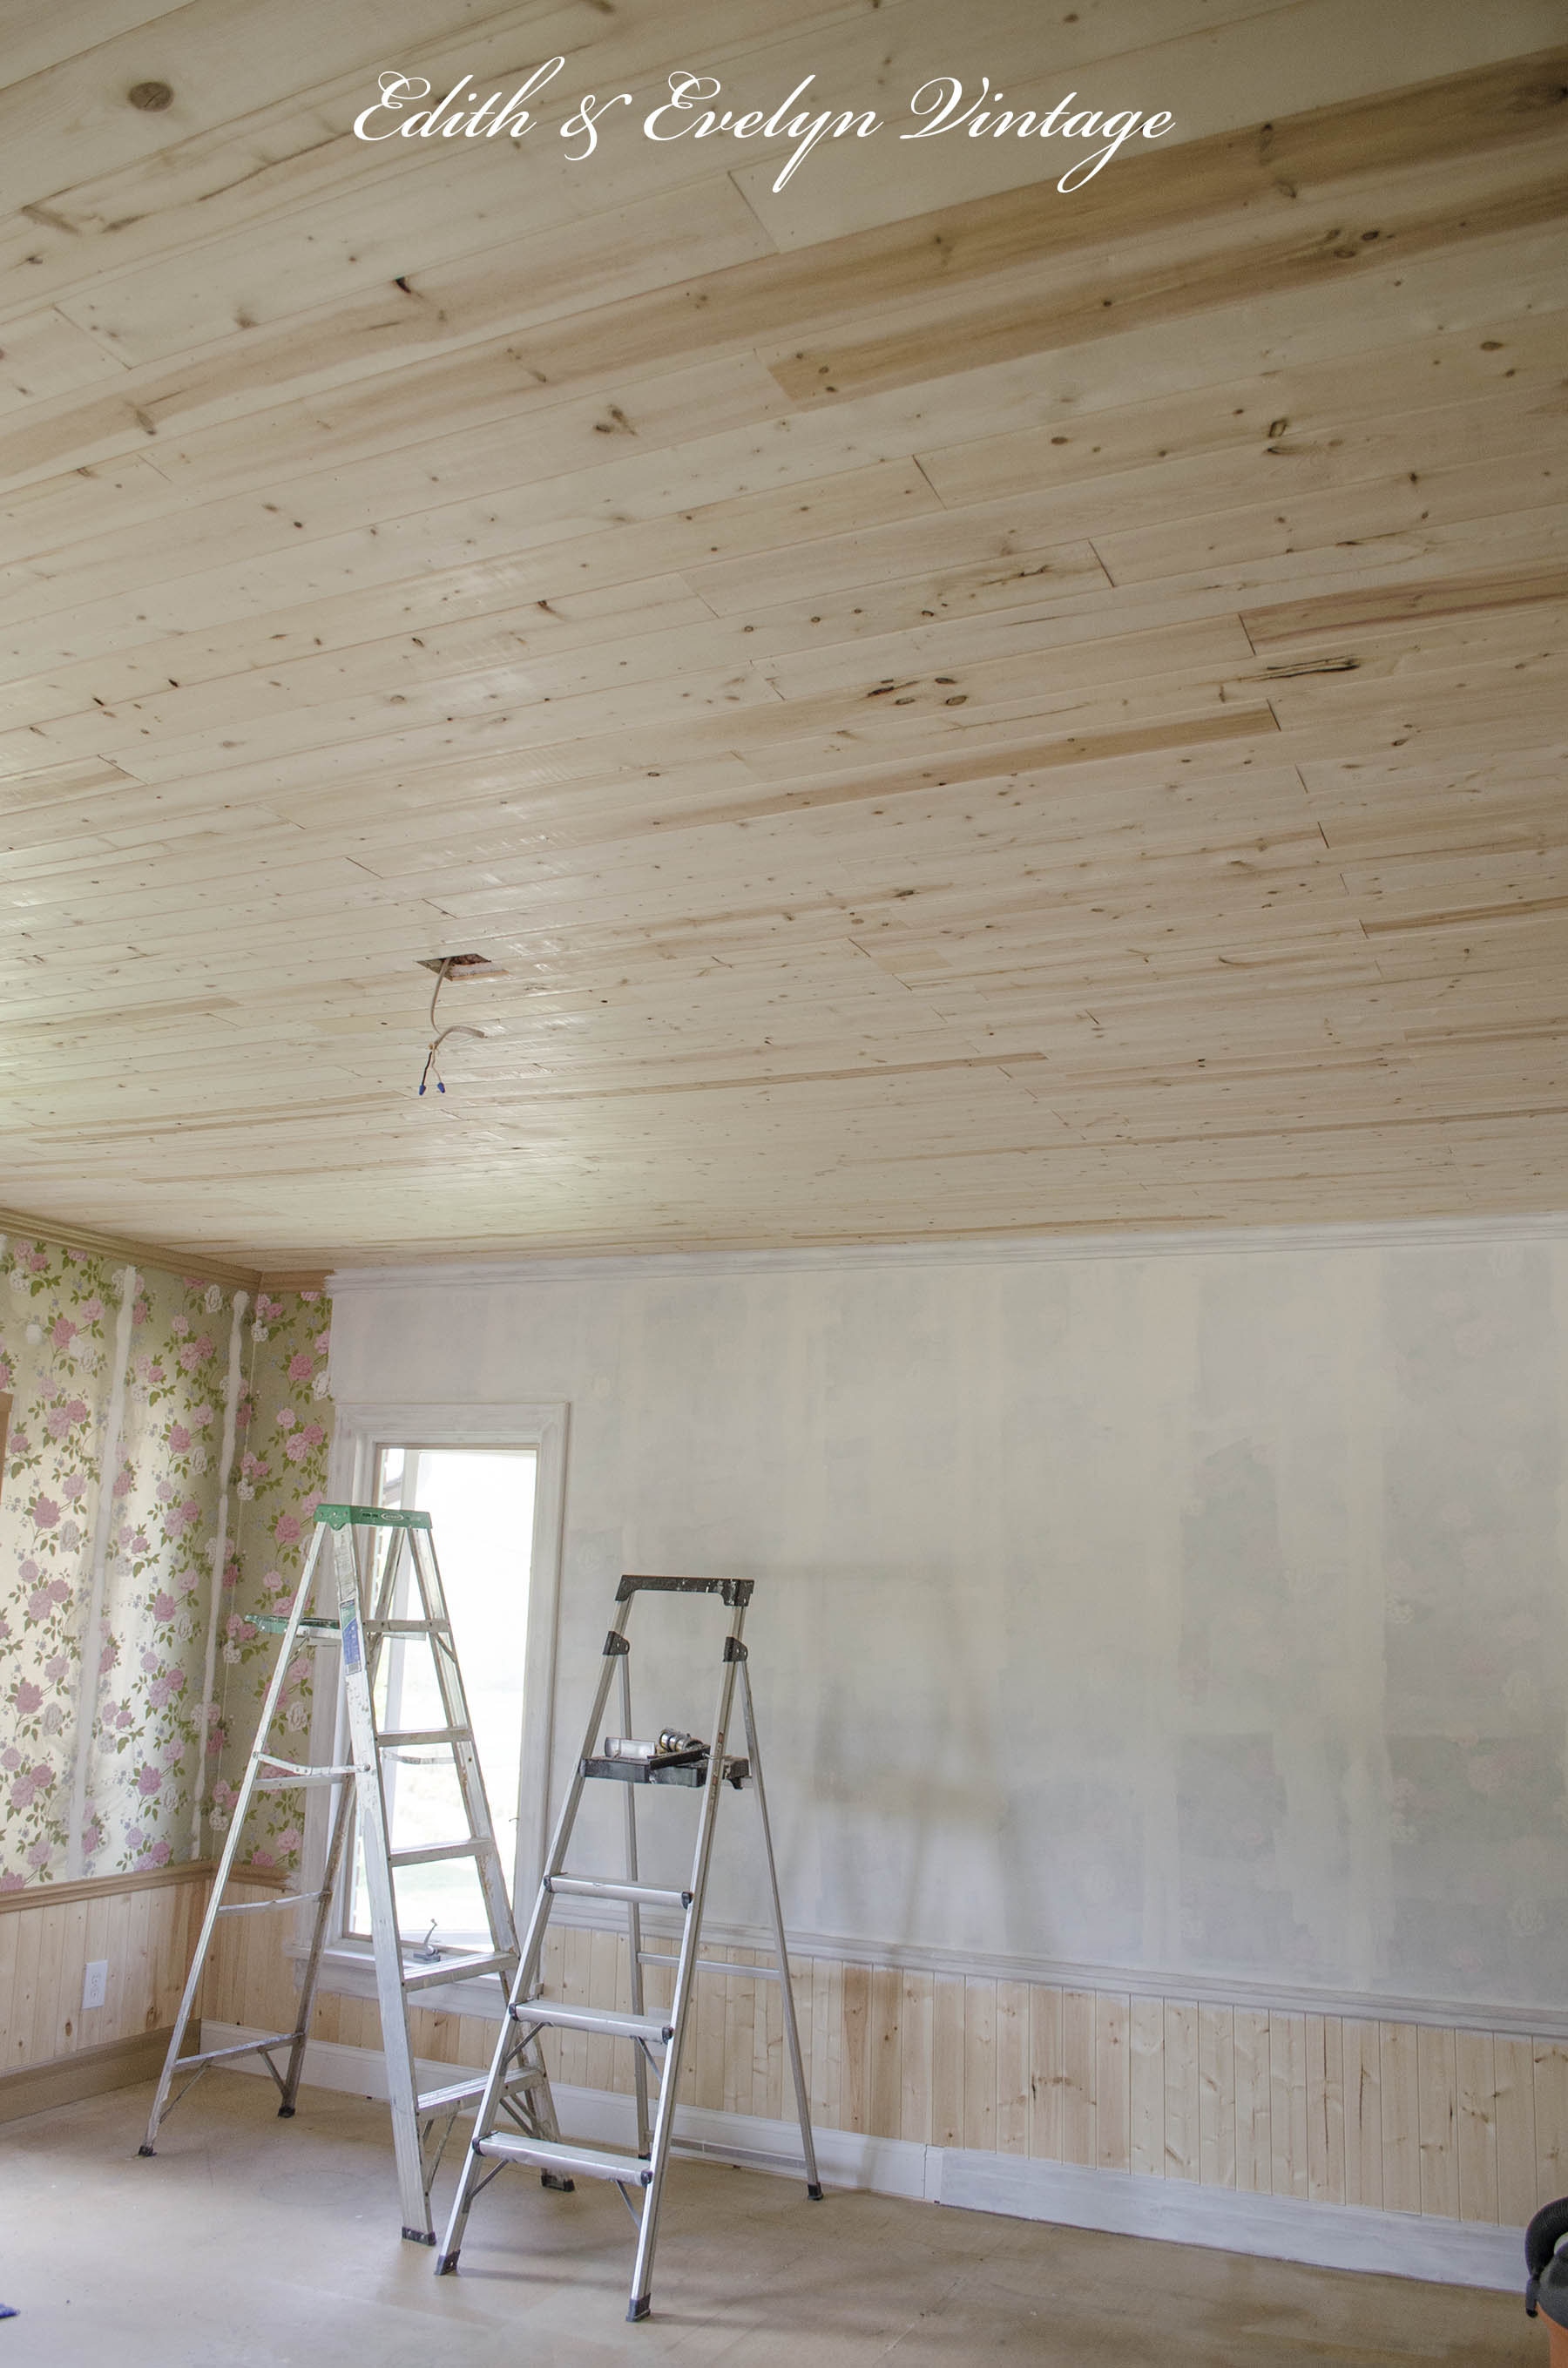 How to plank a popcorn ceiling How to disguise wood paneling